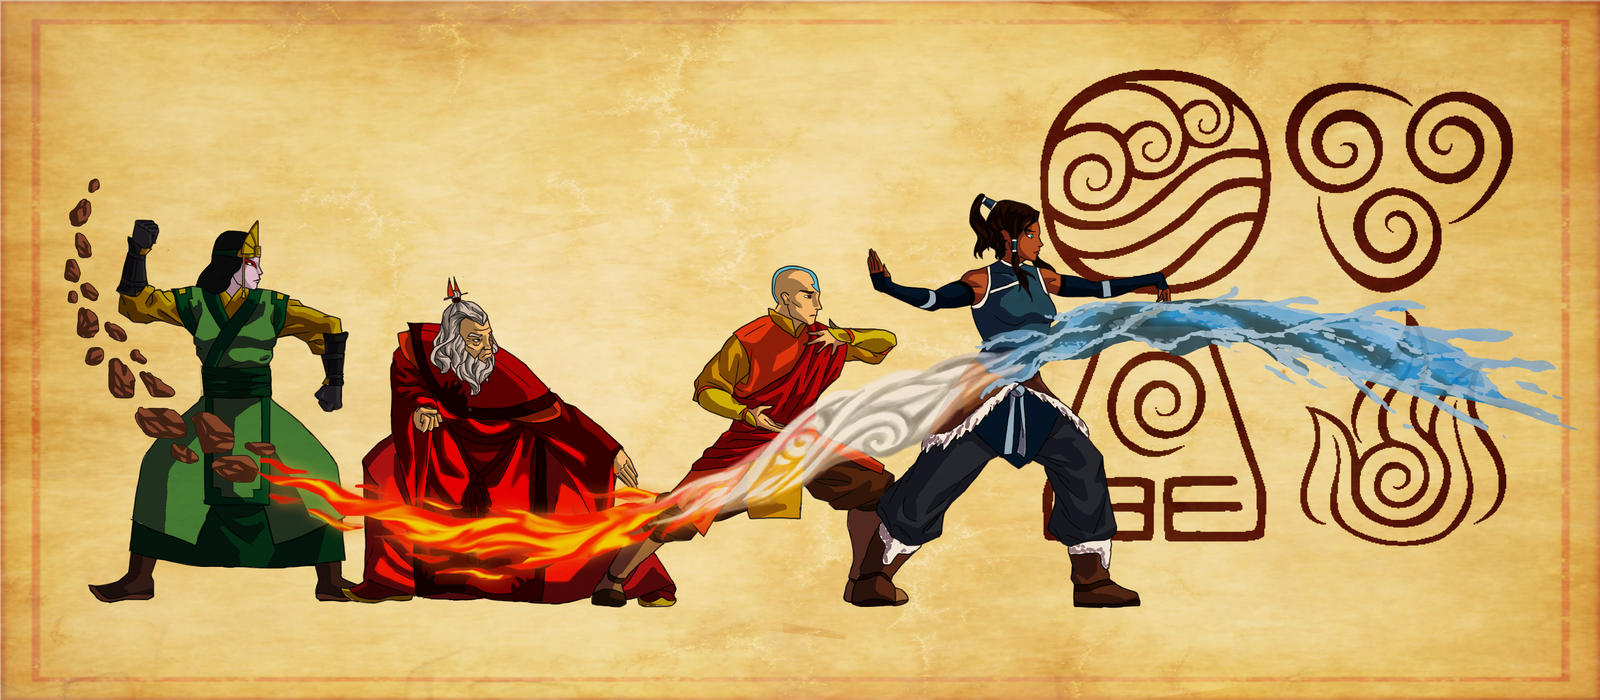 Avatar The Last Airbender Characters As Adults Re-watching The Last Airbender